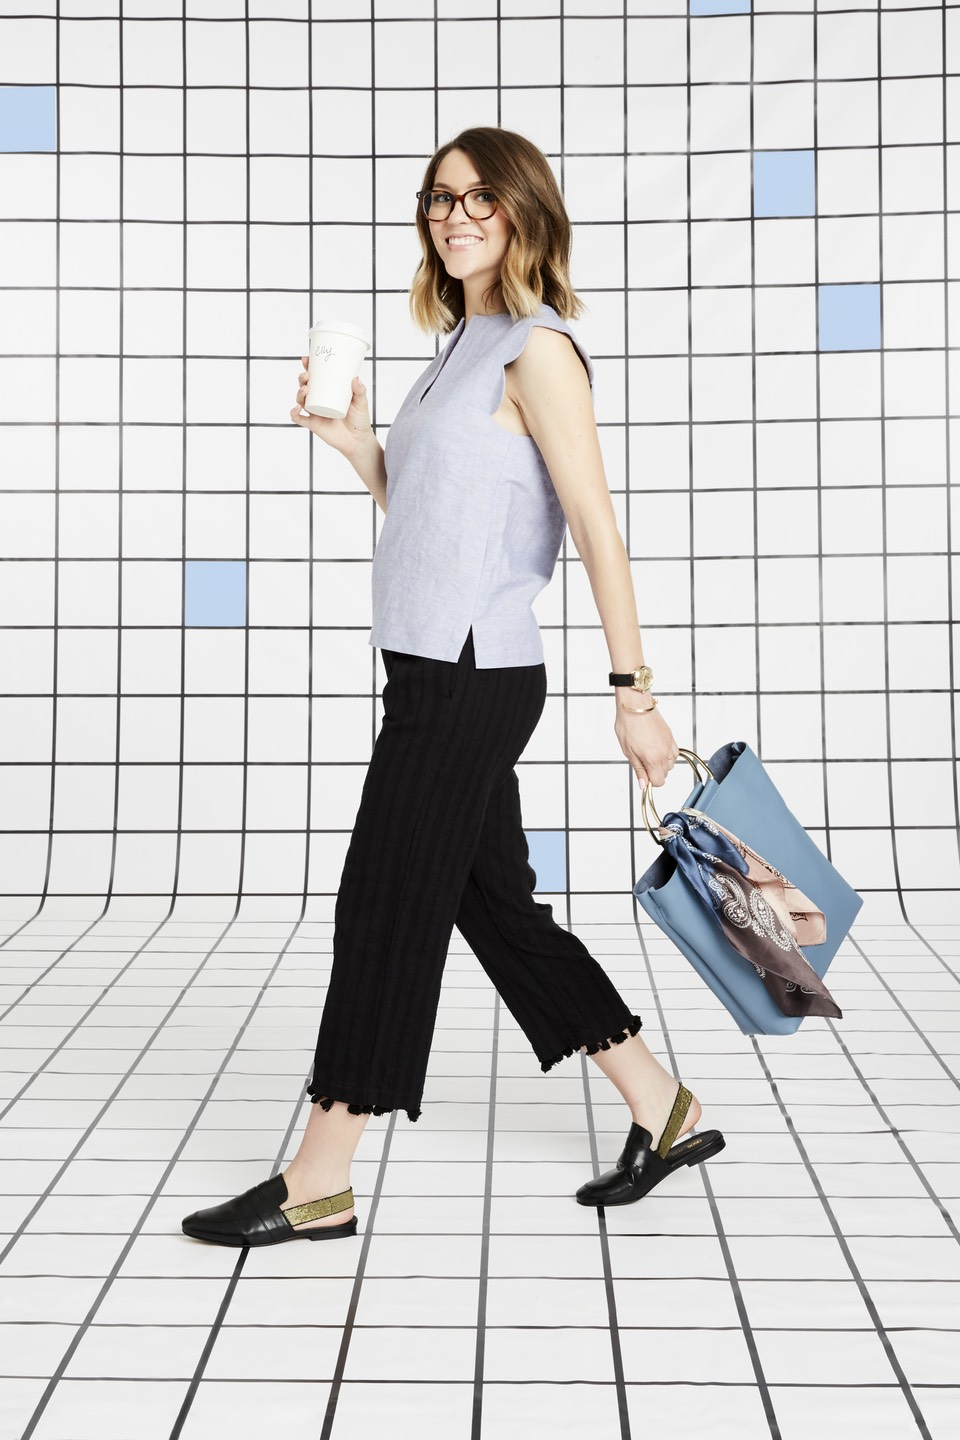 this look - perfect for more conservative offices, this look is professional and still stylish, showing you can still have a little flair in a strictly professional dress code